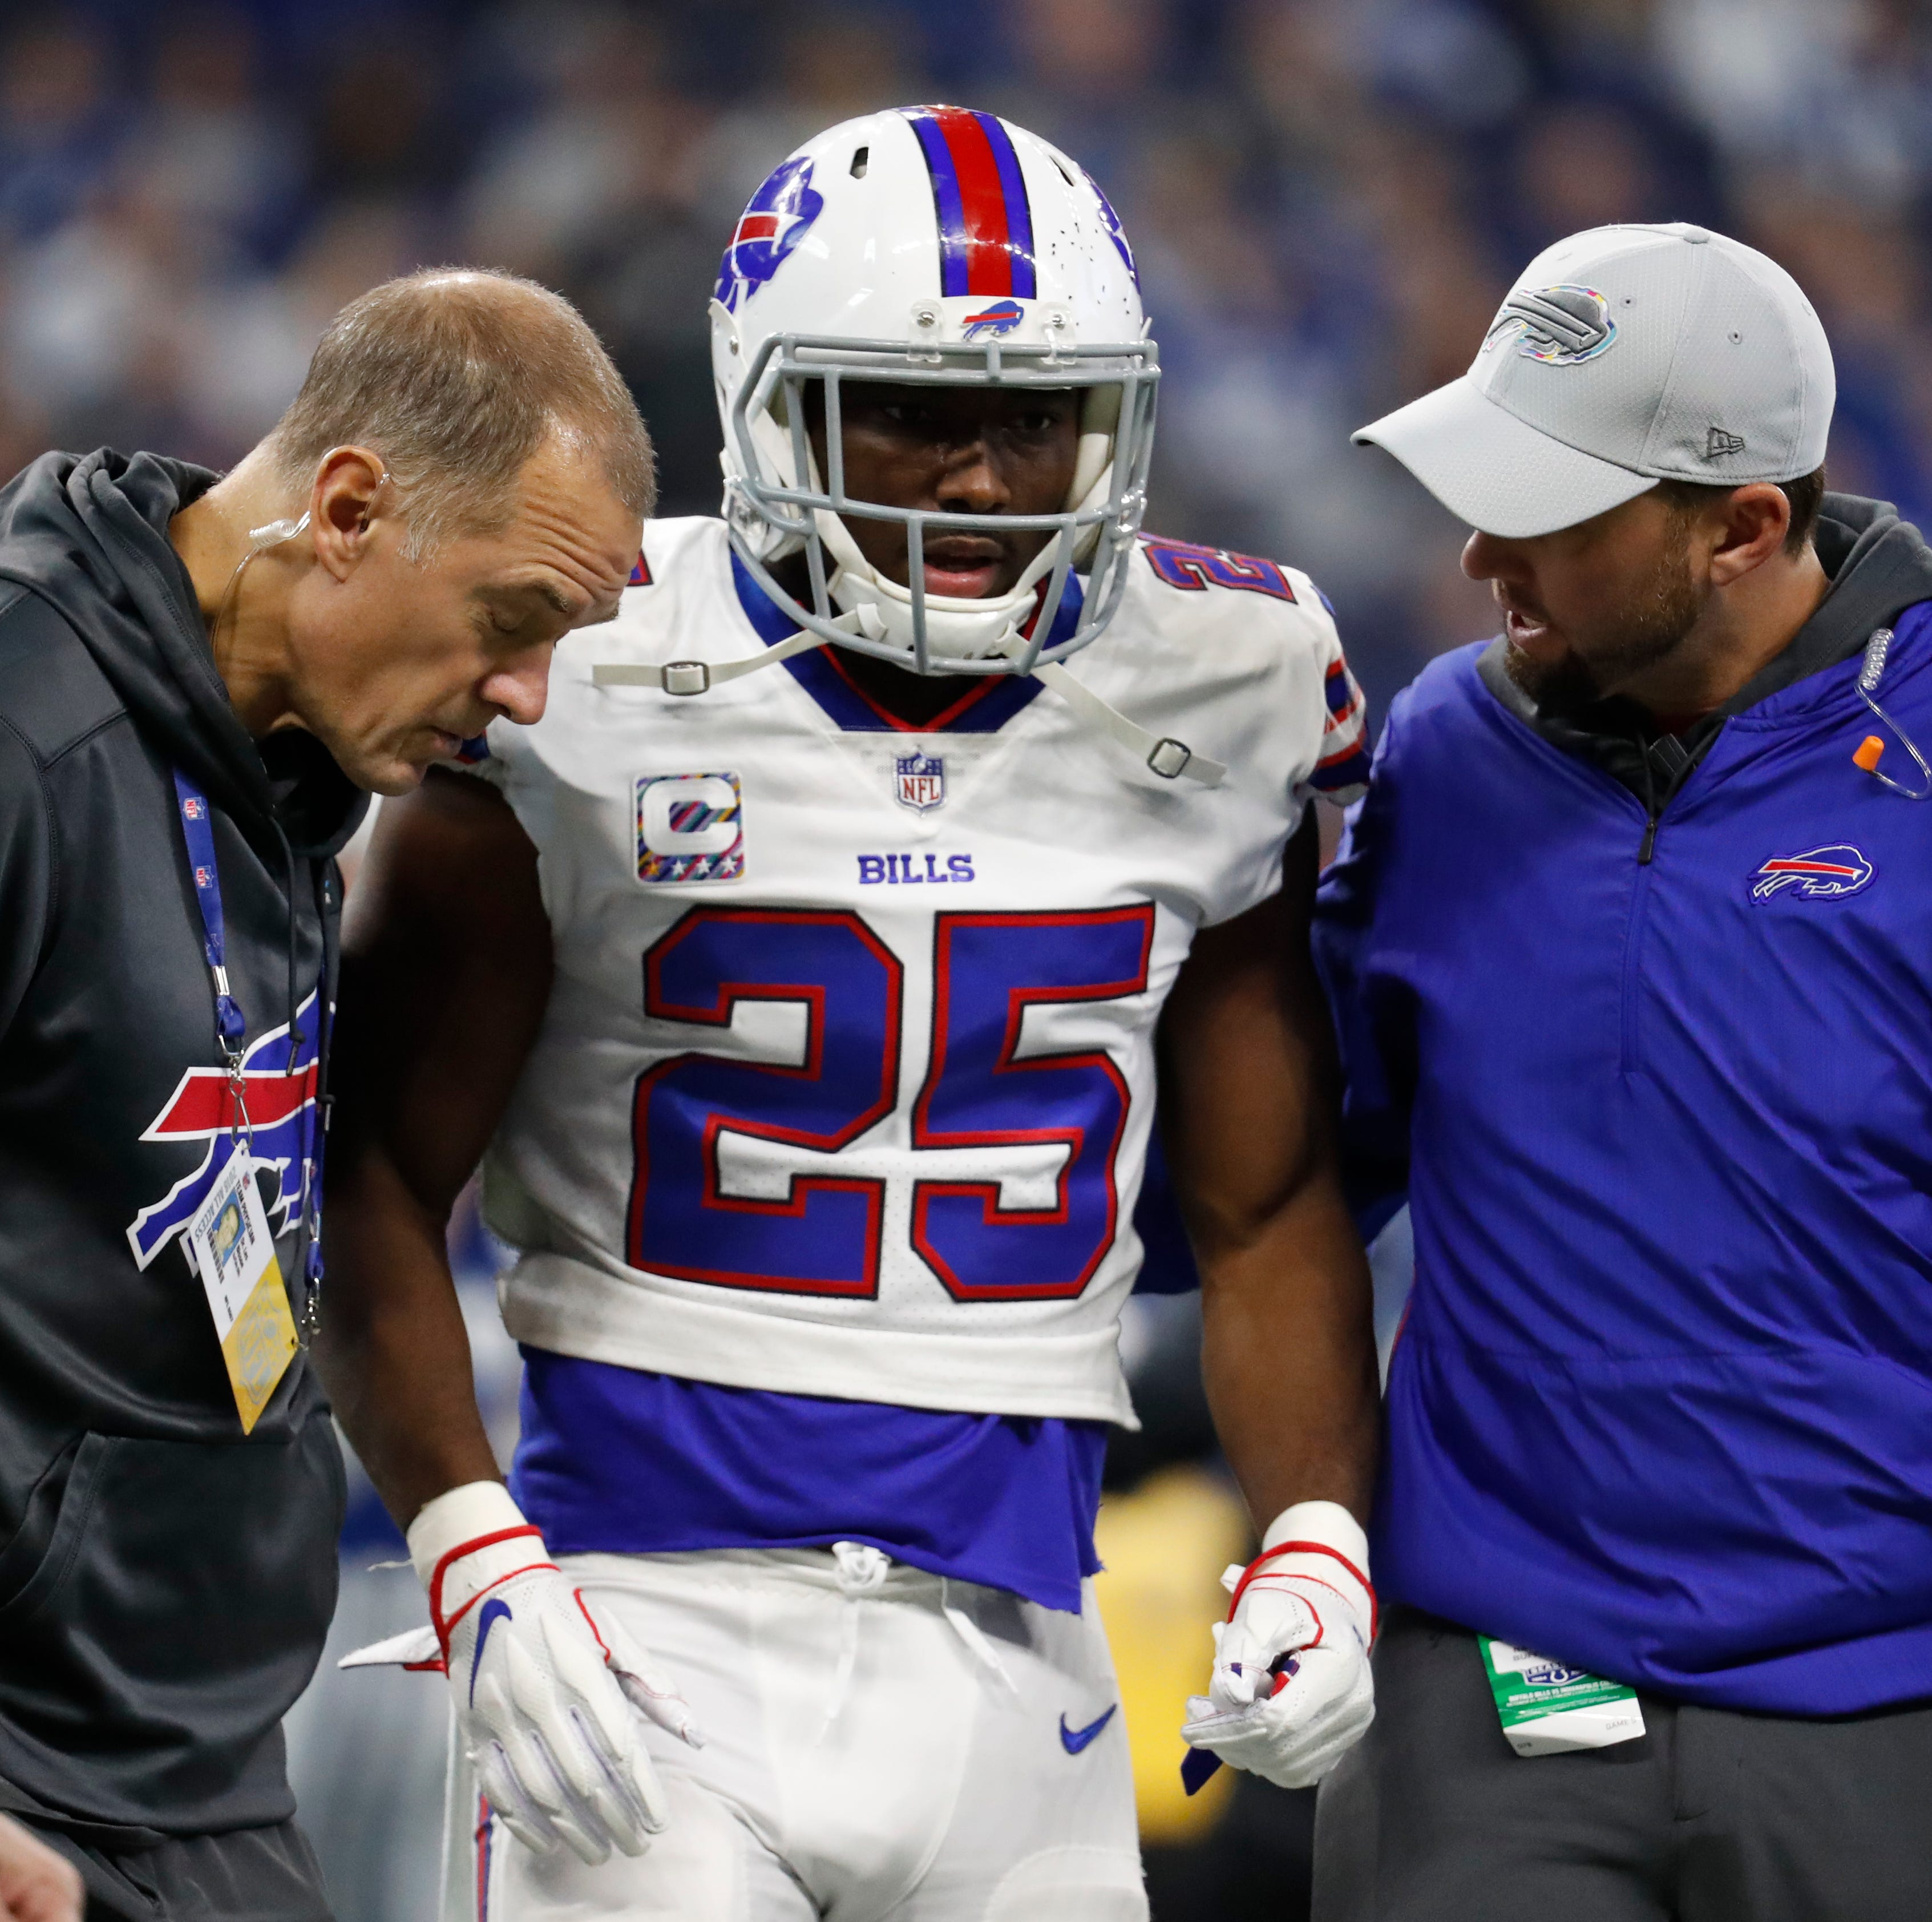 Buffalo Bills running back LeSean McCoy enters concussion protocol